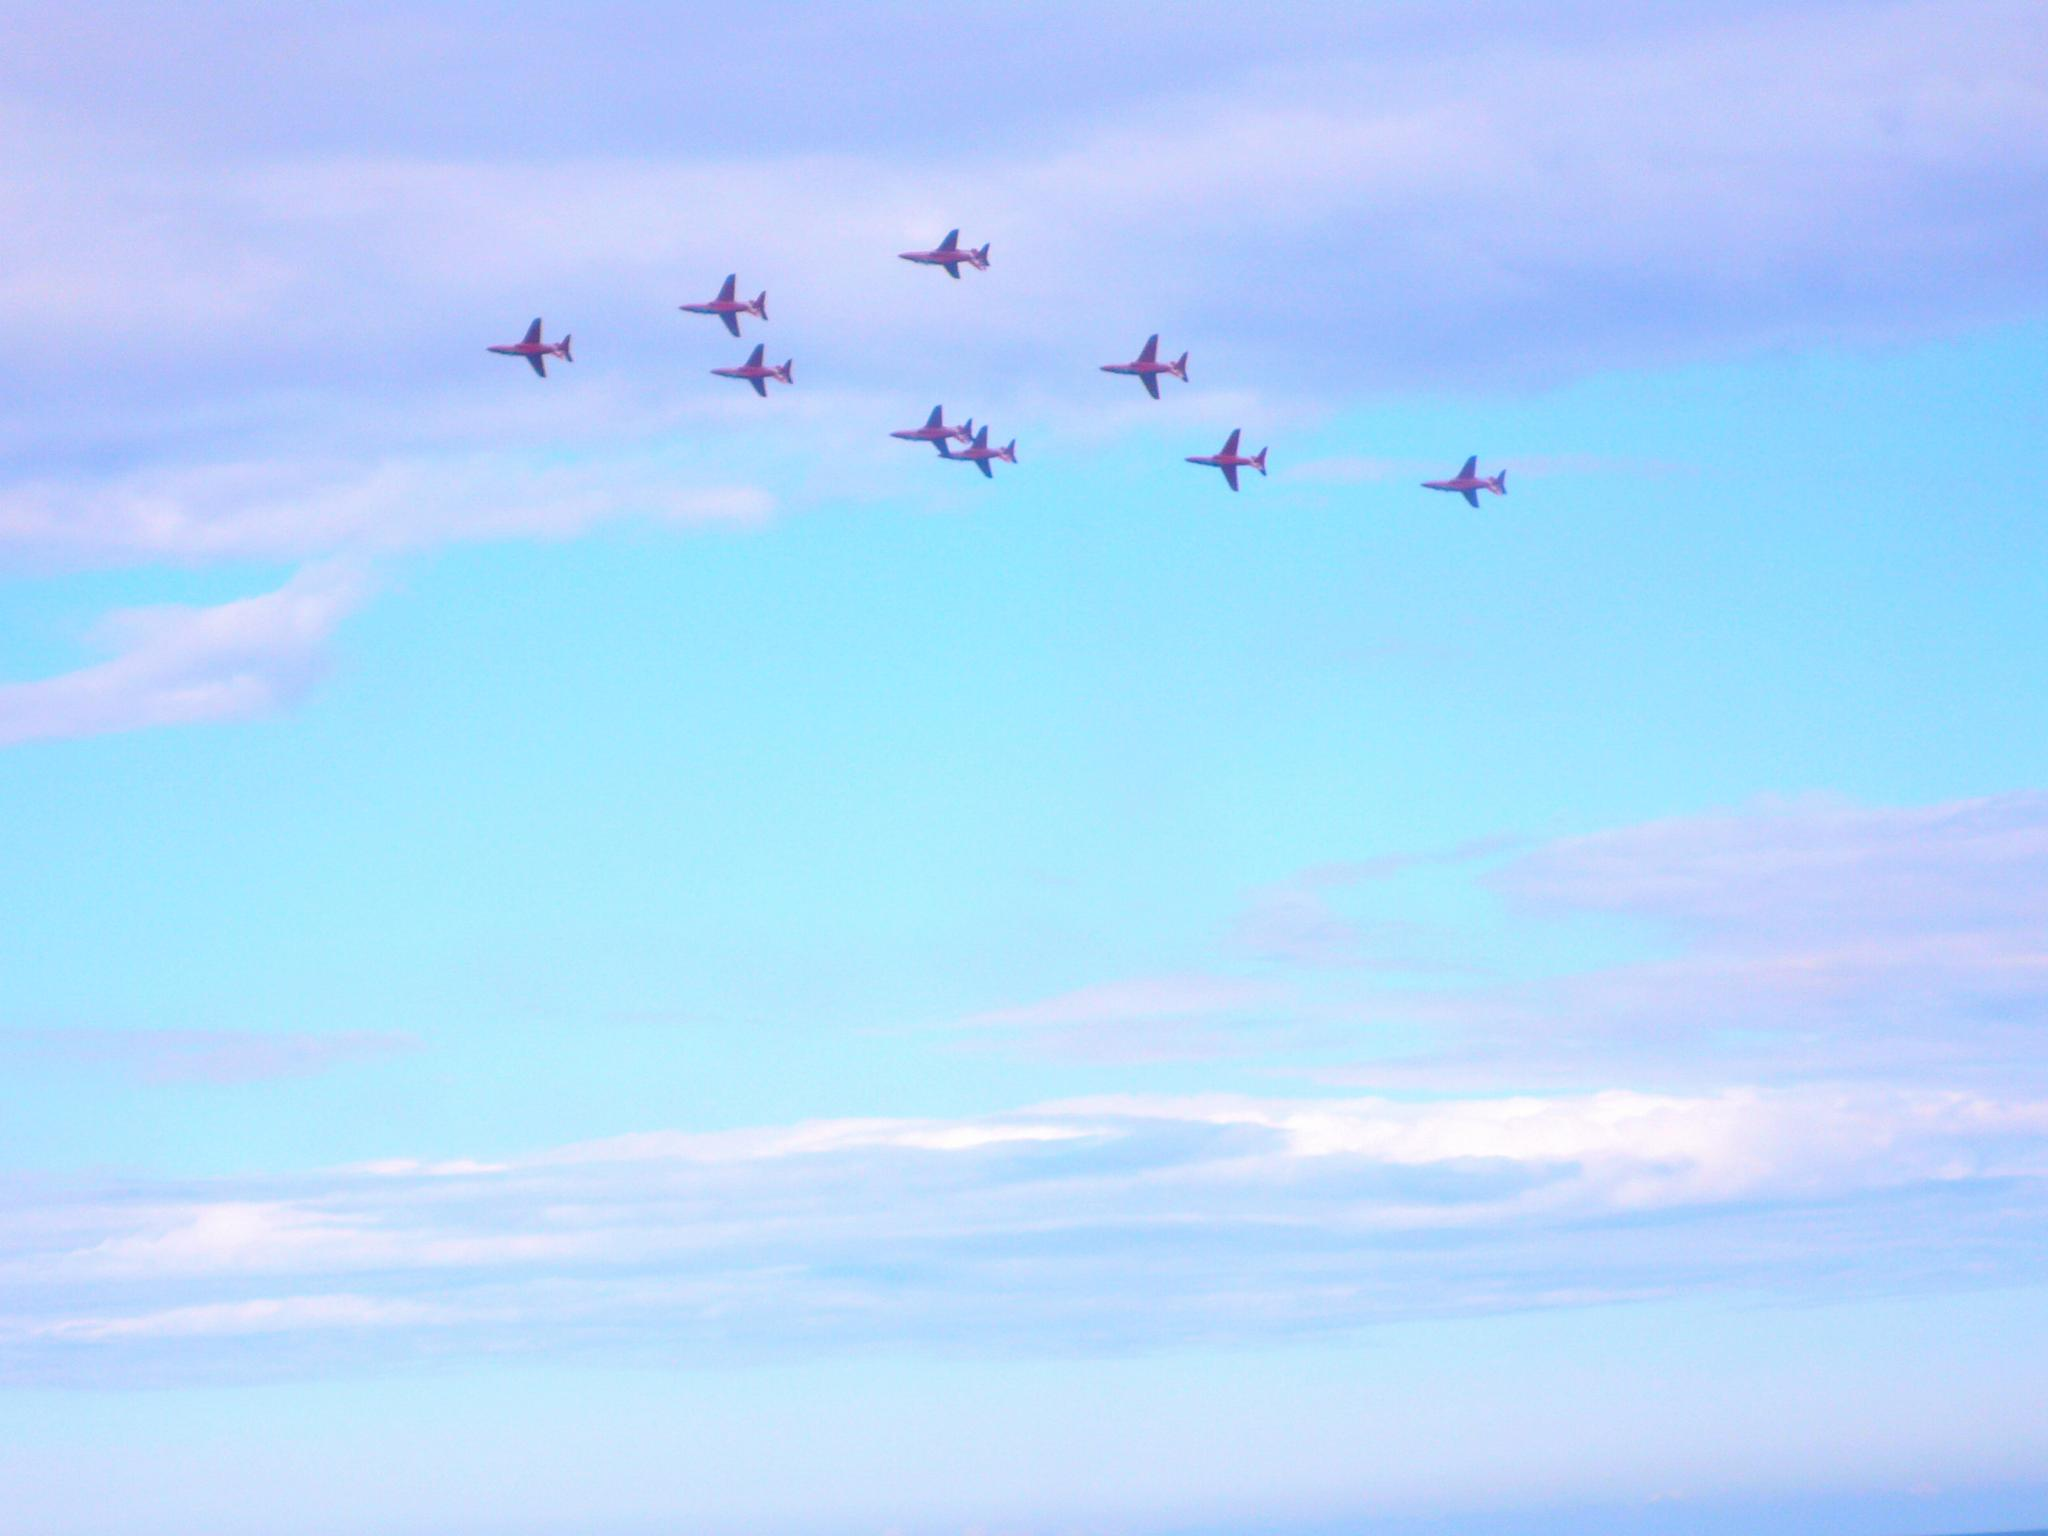 Red arrows flypast by JanetFernandes